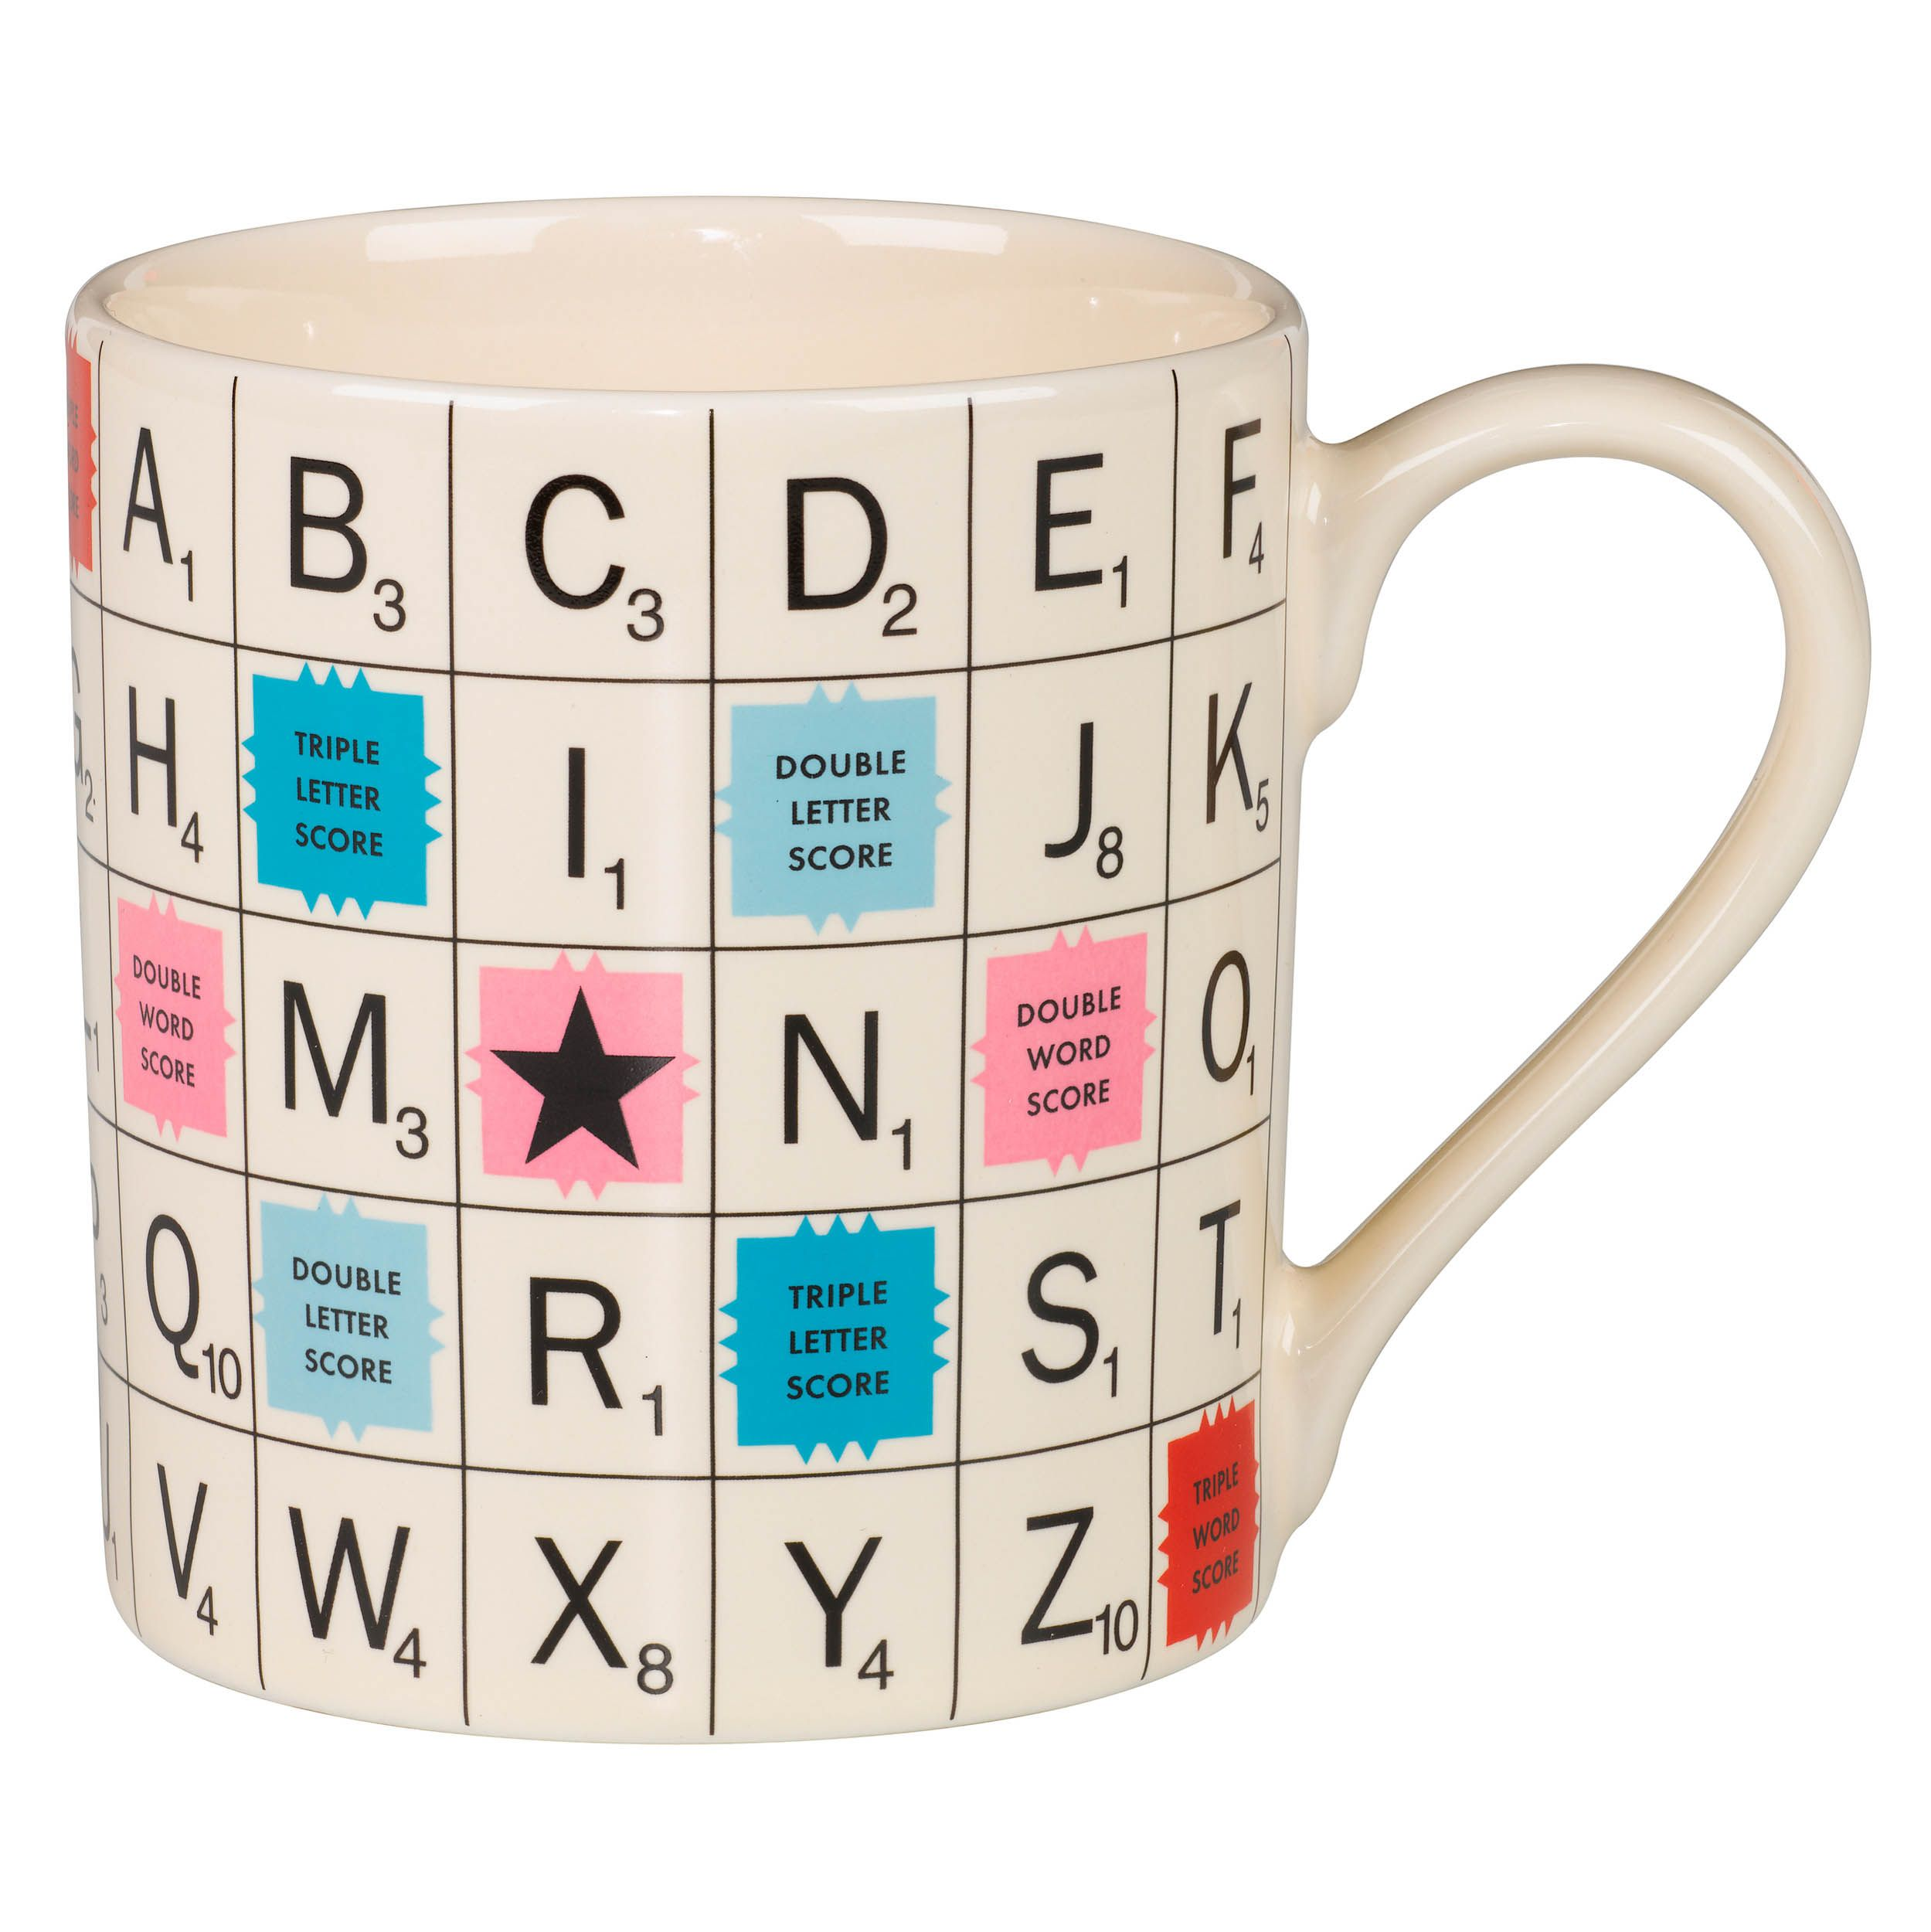 Alphabet mug vintage home sweet home pinterest wolves website scrabble vintage scrabble tile mug sip tea or coffee while winning a triple word score with this ceramic scrabble mug that comes in vintage inspired dailygadgetfo Image collections